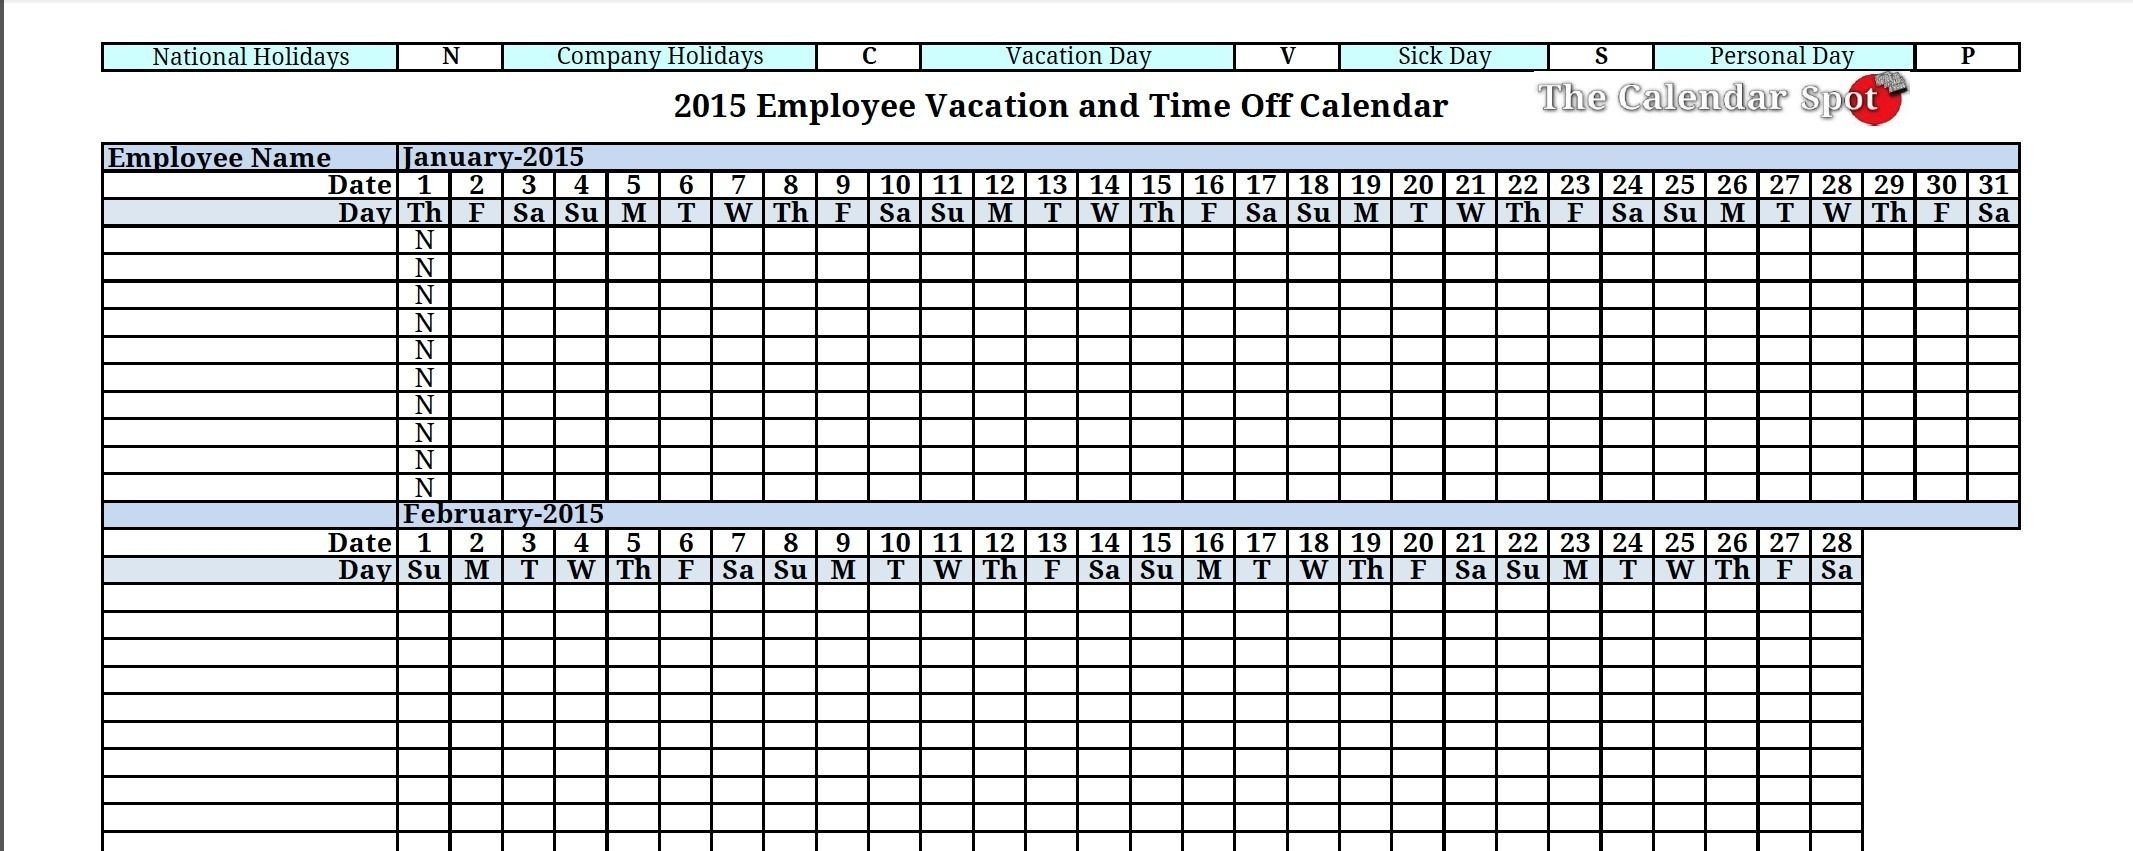 2015 Employee Vacation Absence Tracking Calendar | Vacation-Employee Vacation Calendar Template